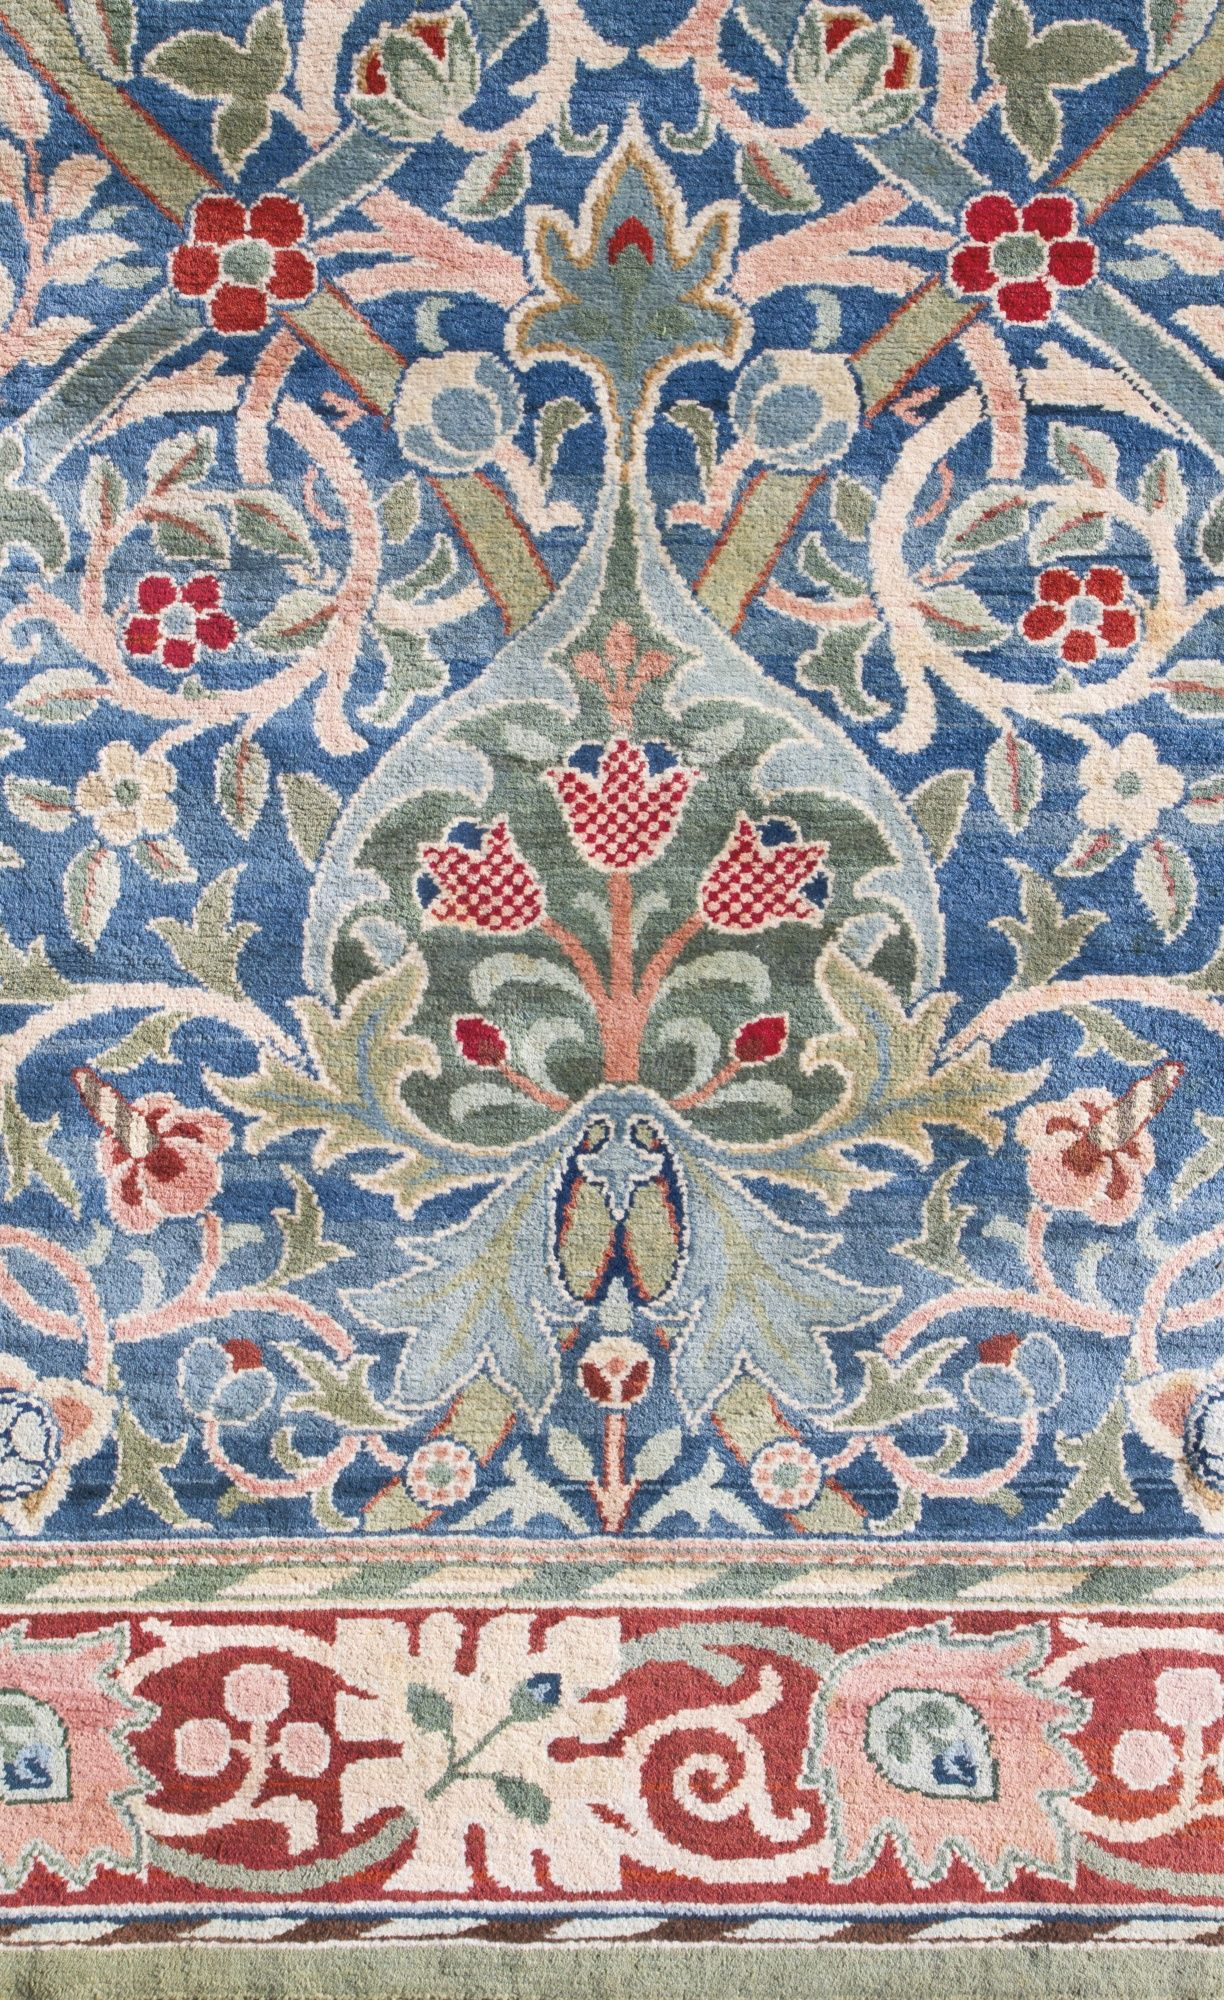 A William Morris 'Hammersmith' Carpet, hand knotted for